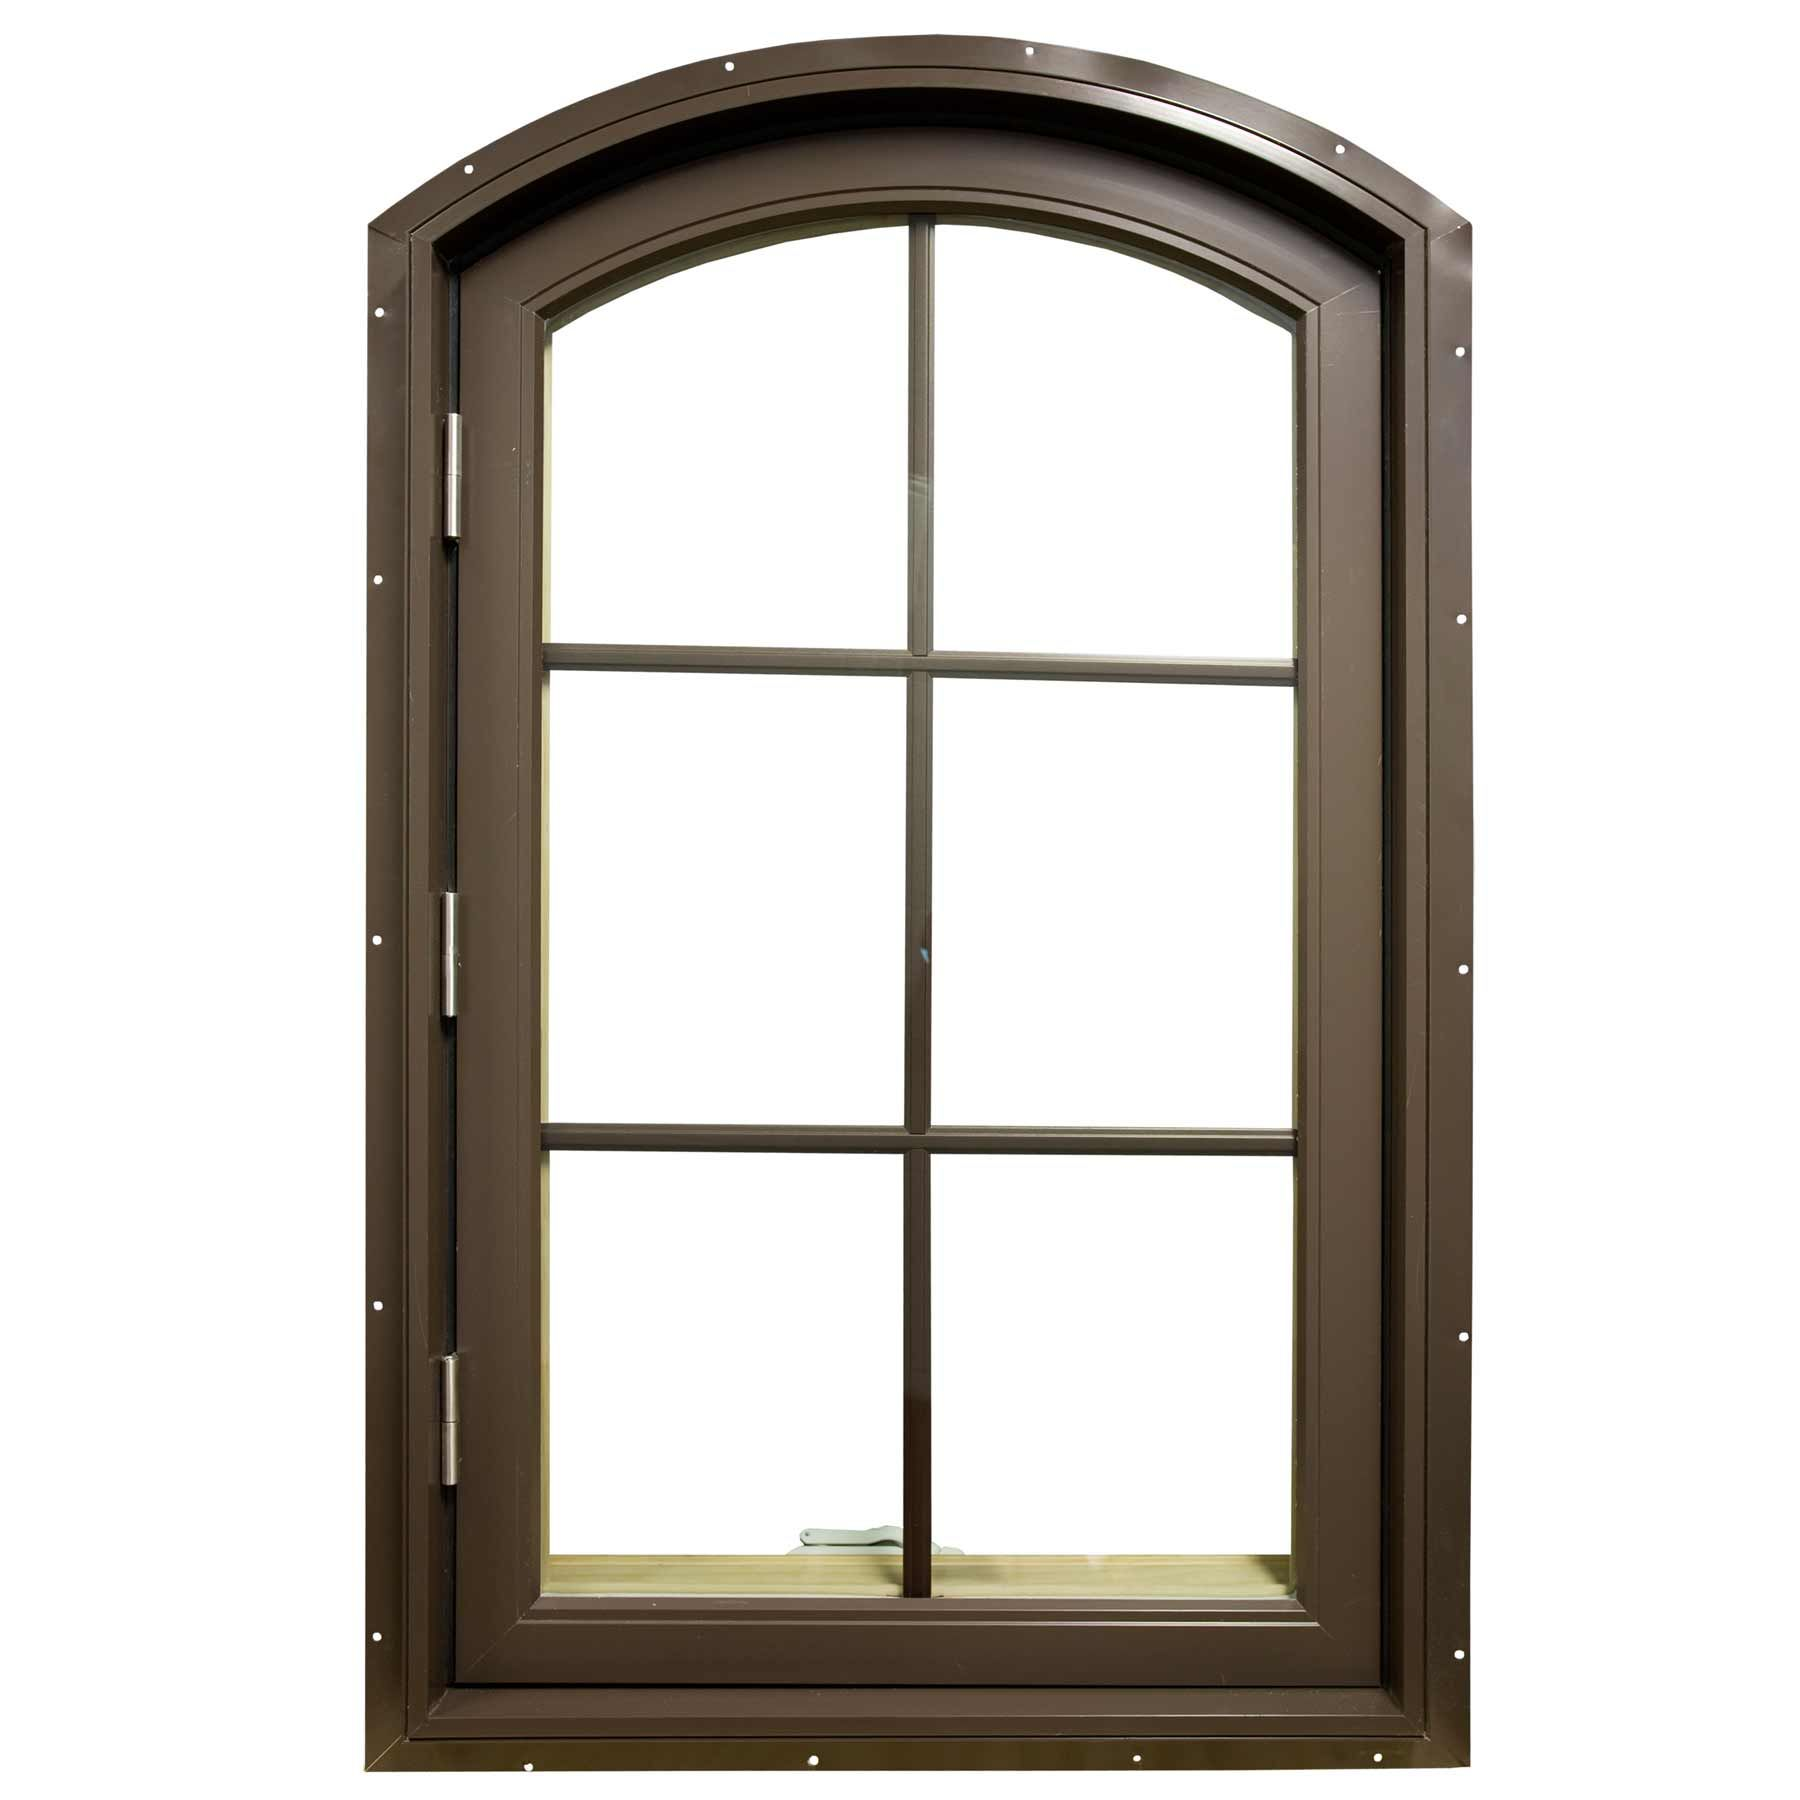 Aluminum casement windows for home feel the home for Metal window designs